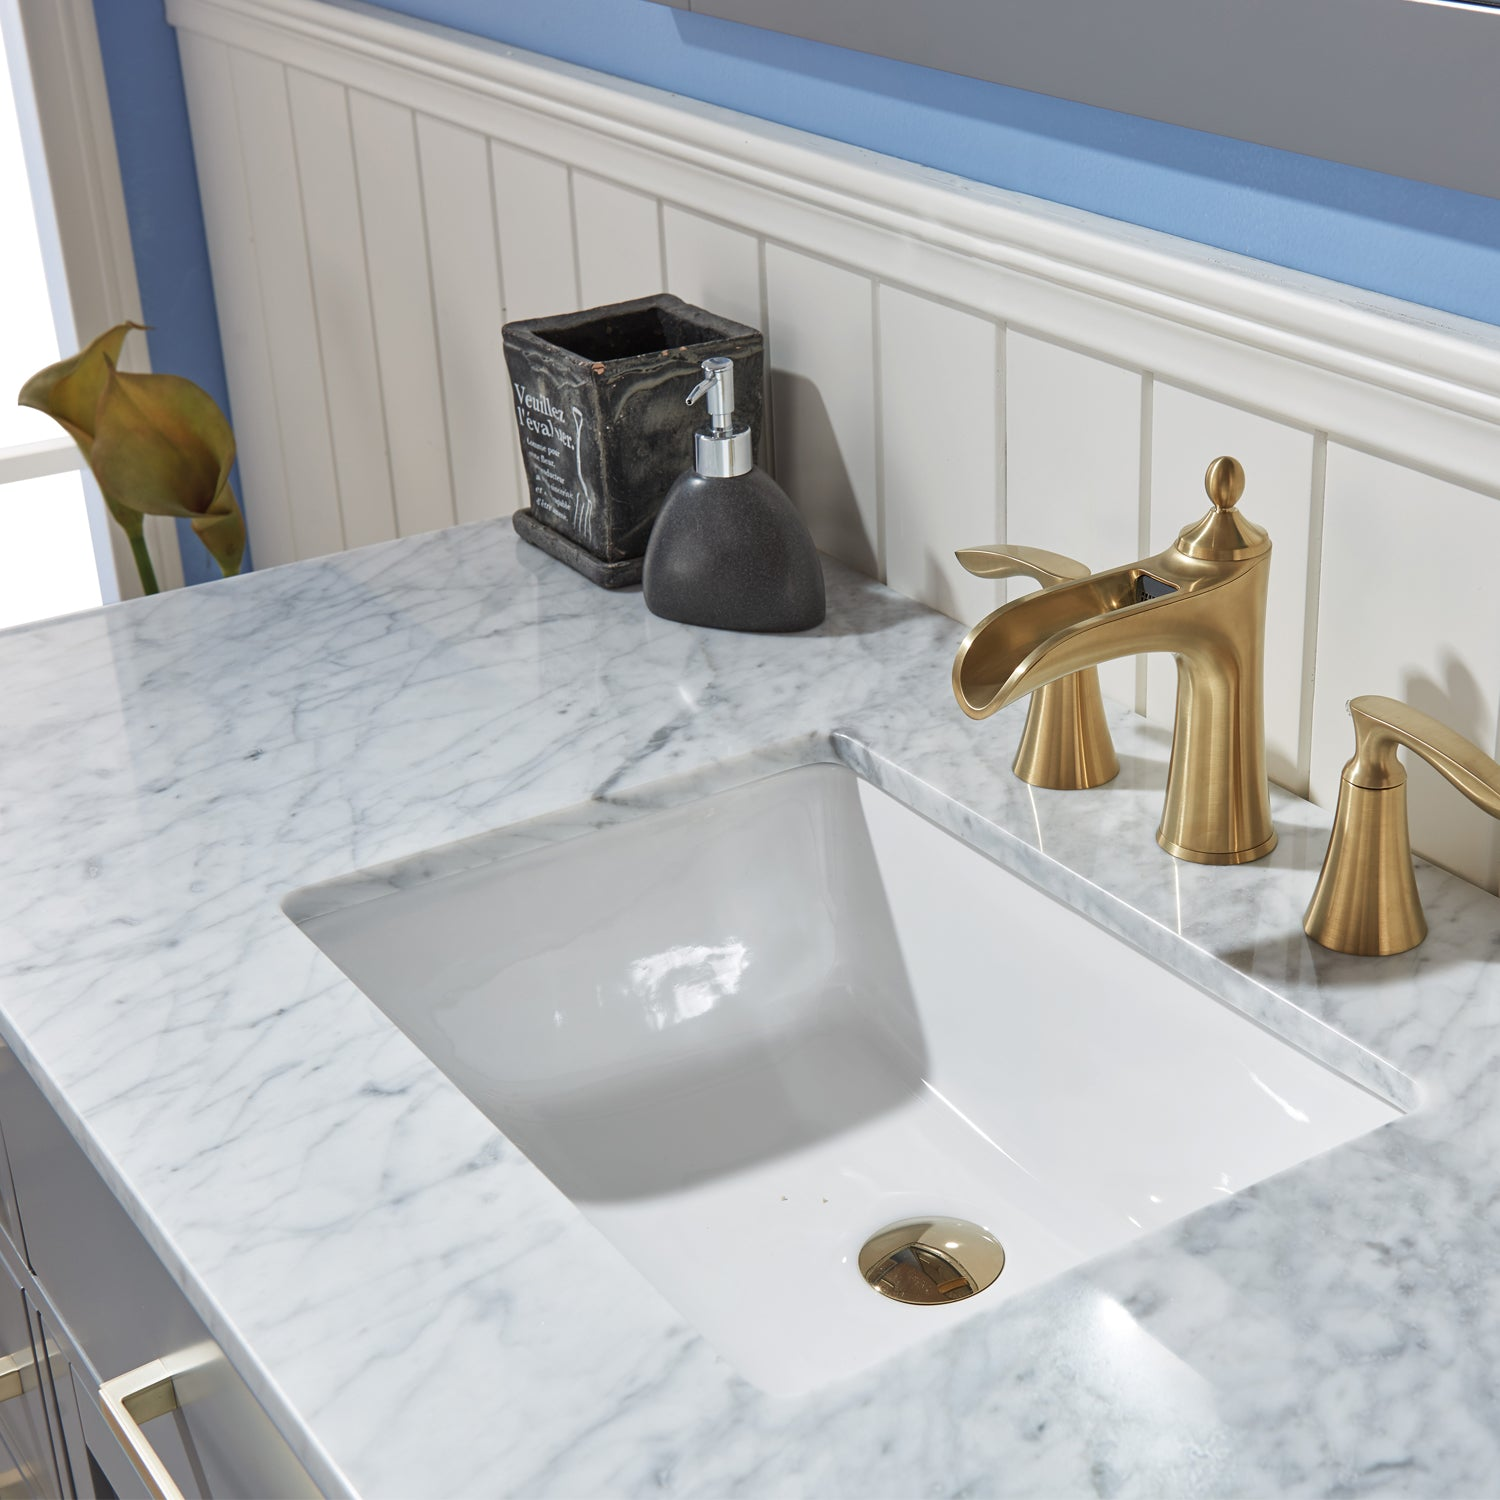 "Ivy 48"" Single Bathroom Vanity Set in Gray and Carrara White Marble Countertop with Mirror"